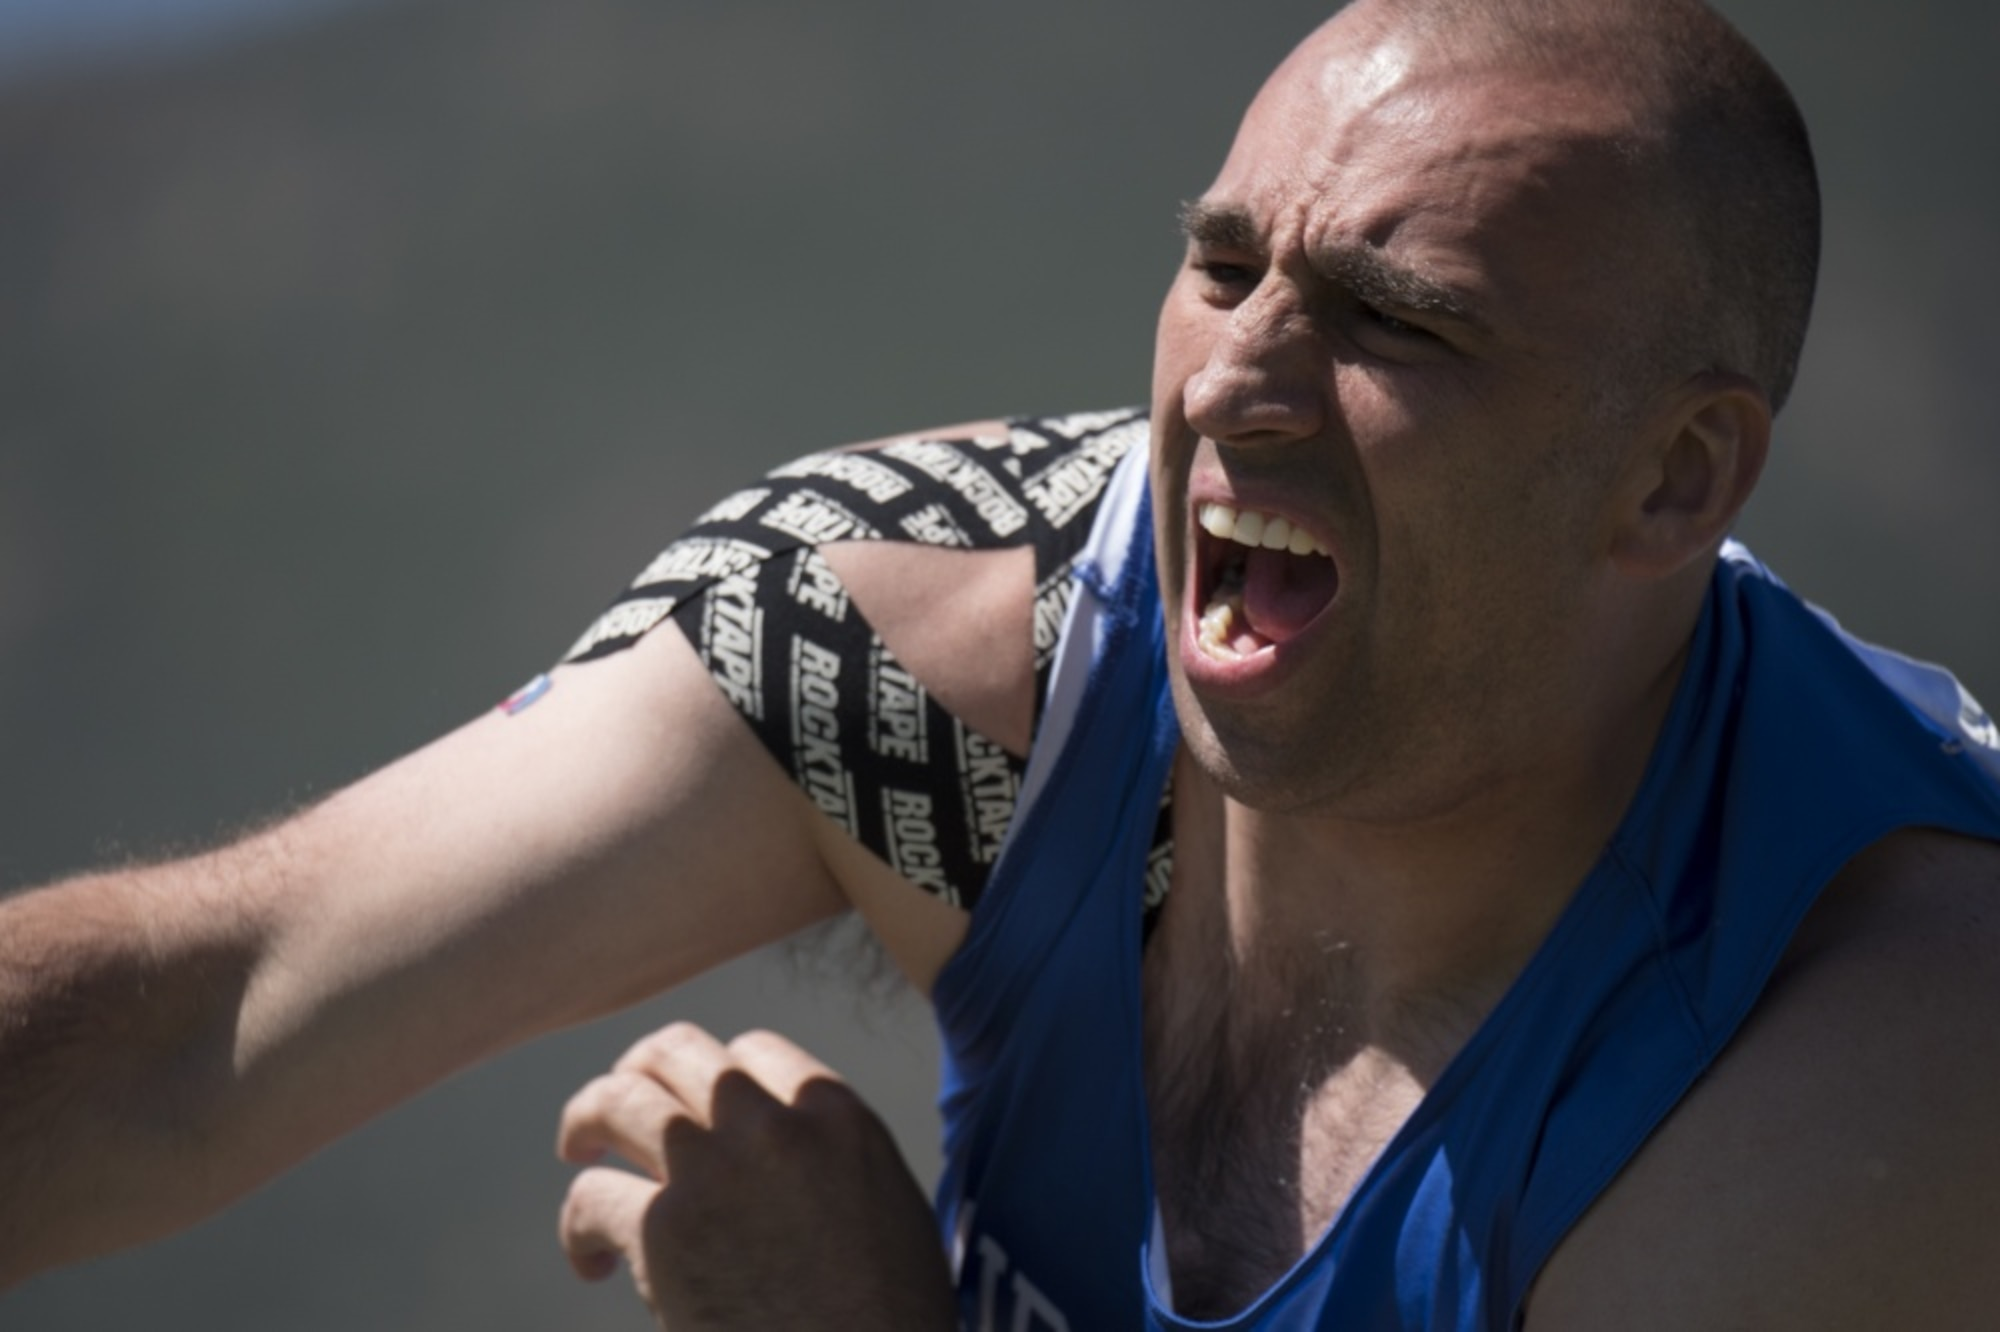 Master Sgt. Michael Christiansen, Department of Defense Warrior Games athlete on Team Air Force, competes in the seated shot put event at the Games in Colorado Springs, Colo., June 2, 2018. Adaptive sports, like those practiced at the warrior Games, provide opportunities for athletes to heal and to regain confidence and purpose; the Games are a way to celebrate the athlete's efforts and commitment to healing. (U.S. Air Force photo by Senior Airman Dennis Hoffman)